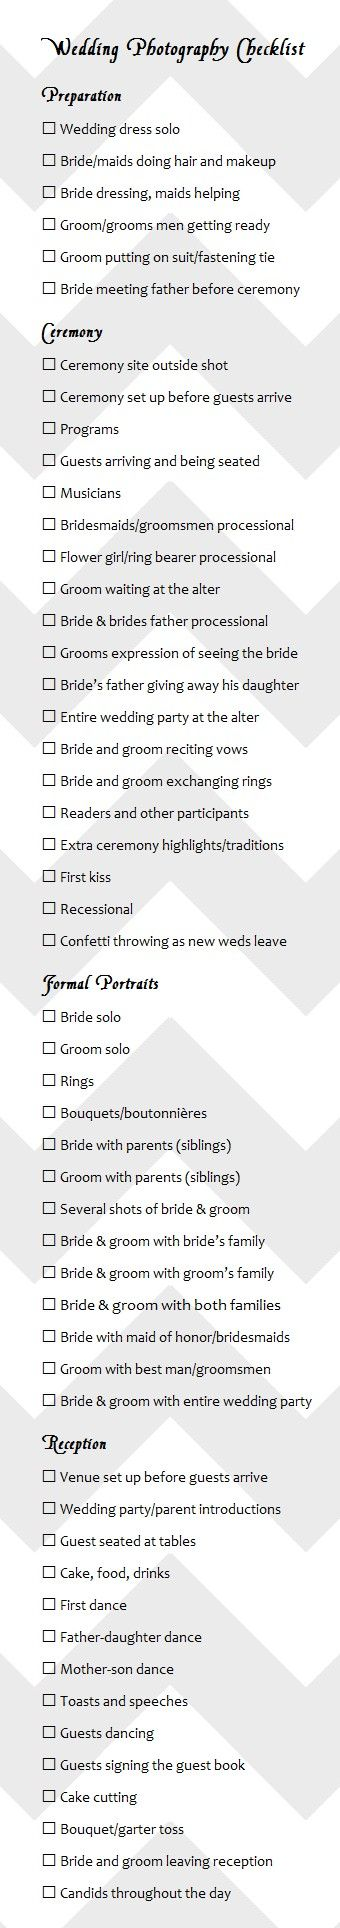 10 best images about Wedding - planning on Pinterest Discover more - sample wedding guest list